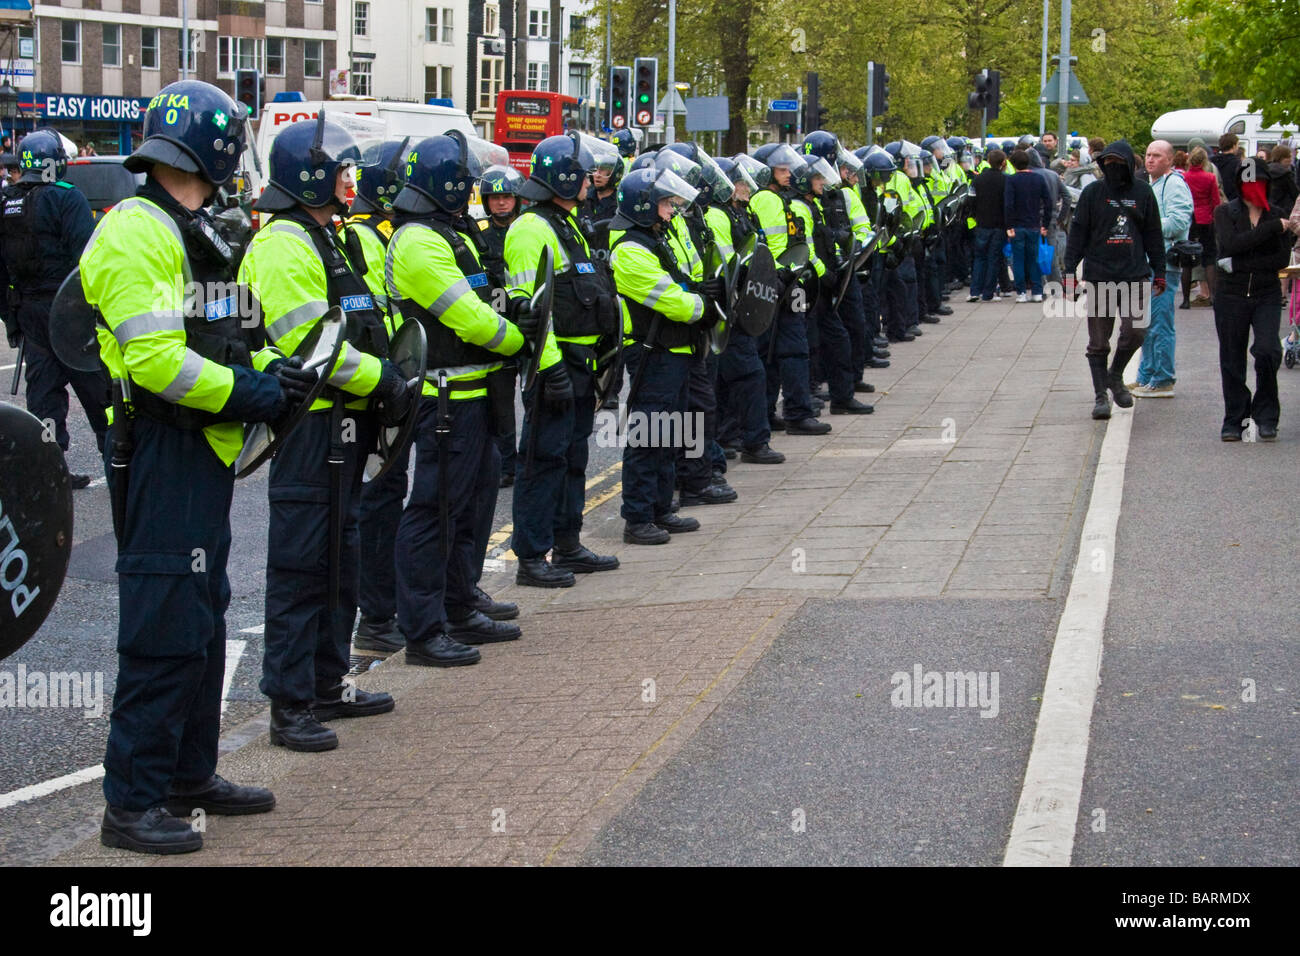 Riot police line the road observing protests during may day protests in Brighton, Sussex, UK JPH0192 - Stock Image